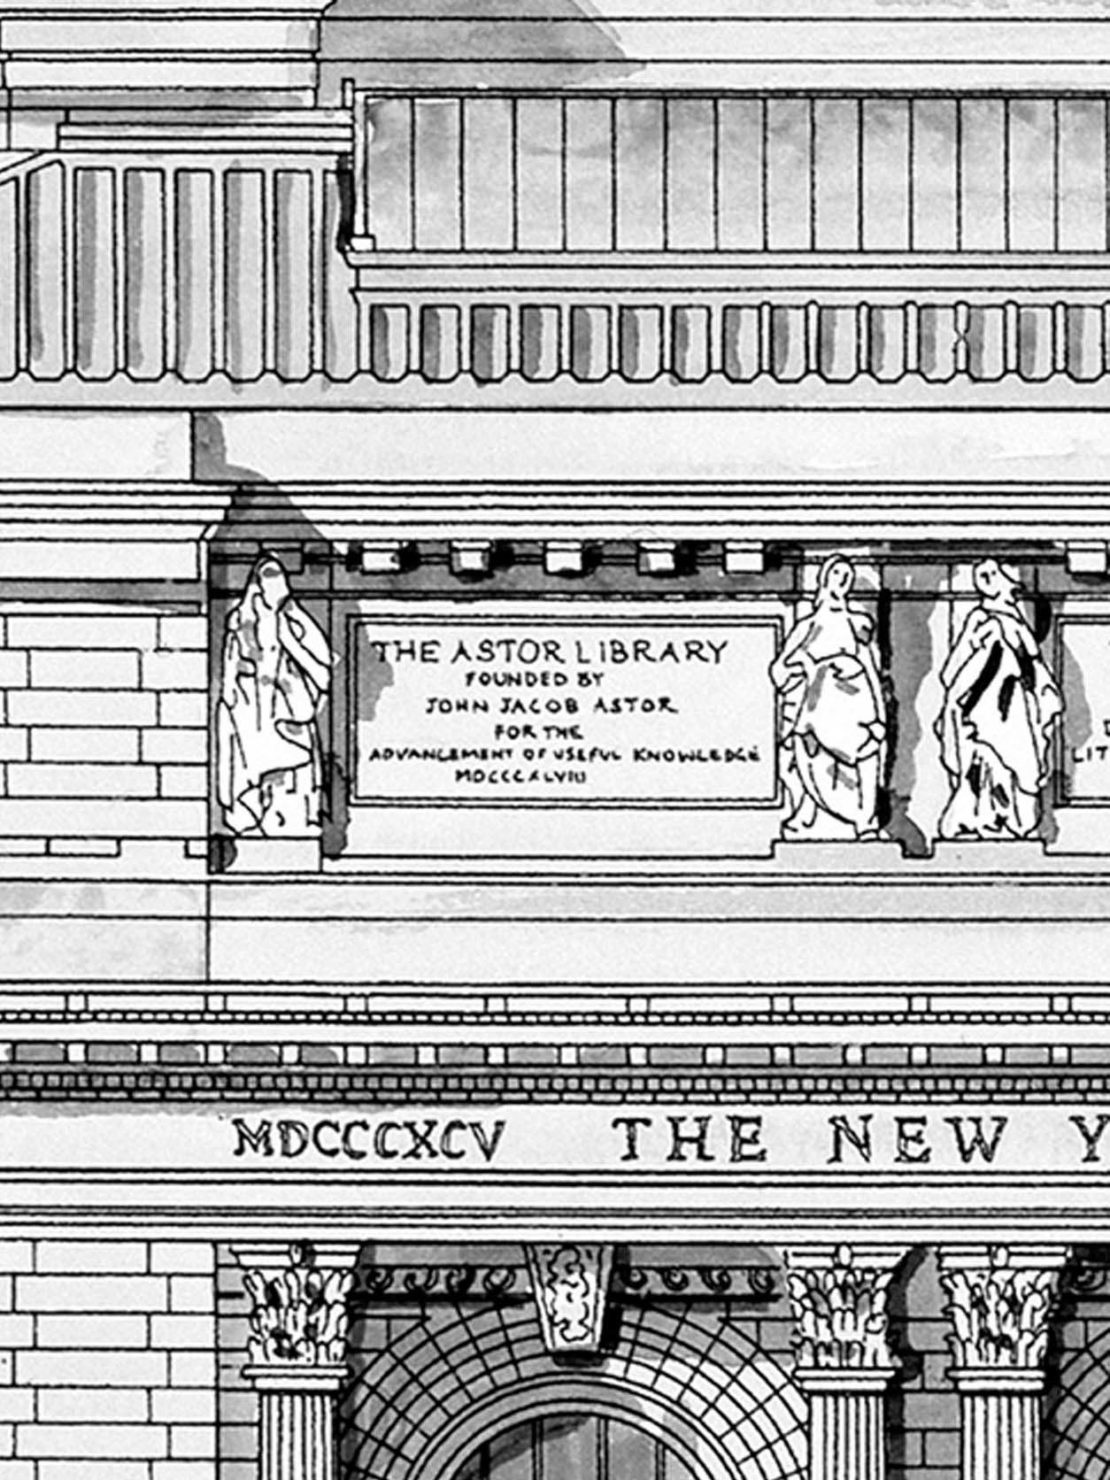 Drawing of the New York Public Library